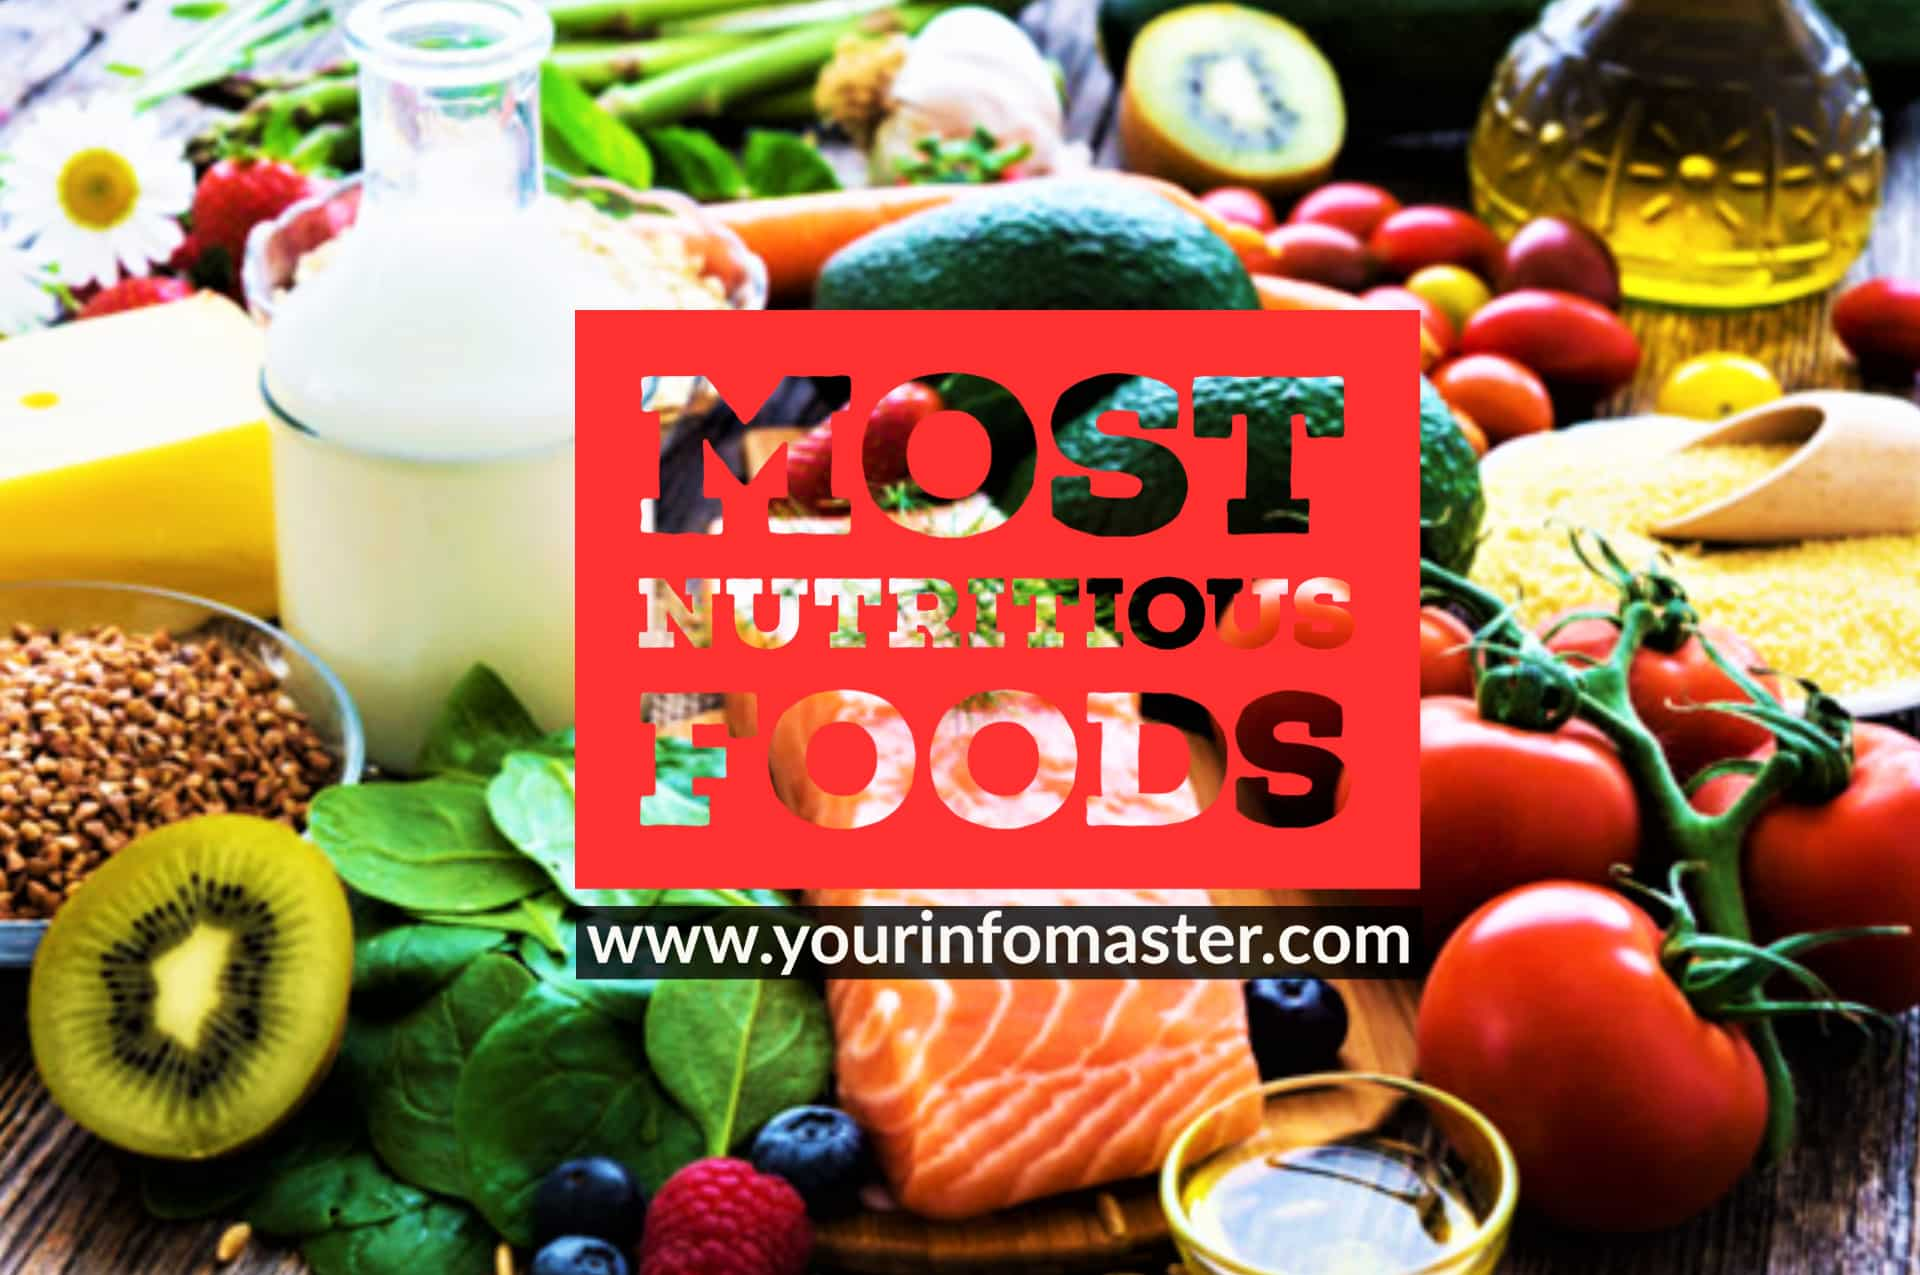 foods to eat every day, healthy foods for brain power, list of nutritious foods, most energy dense foods, most healthy vegetables, most nutritious canned foods, most nutritious dog foods, Most nutritious foods